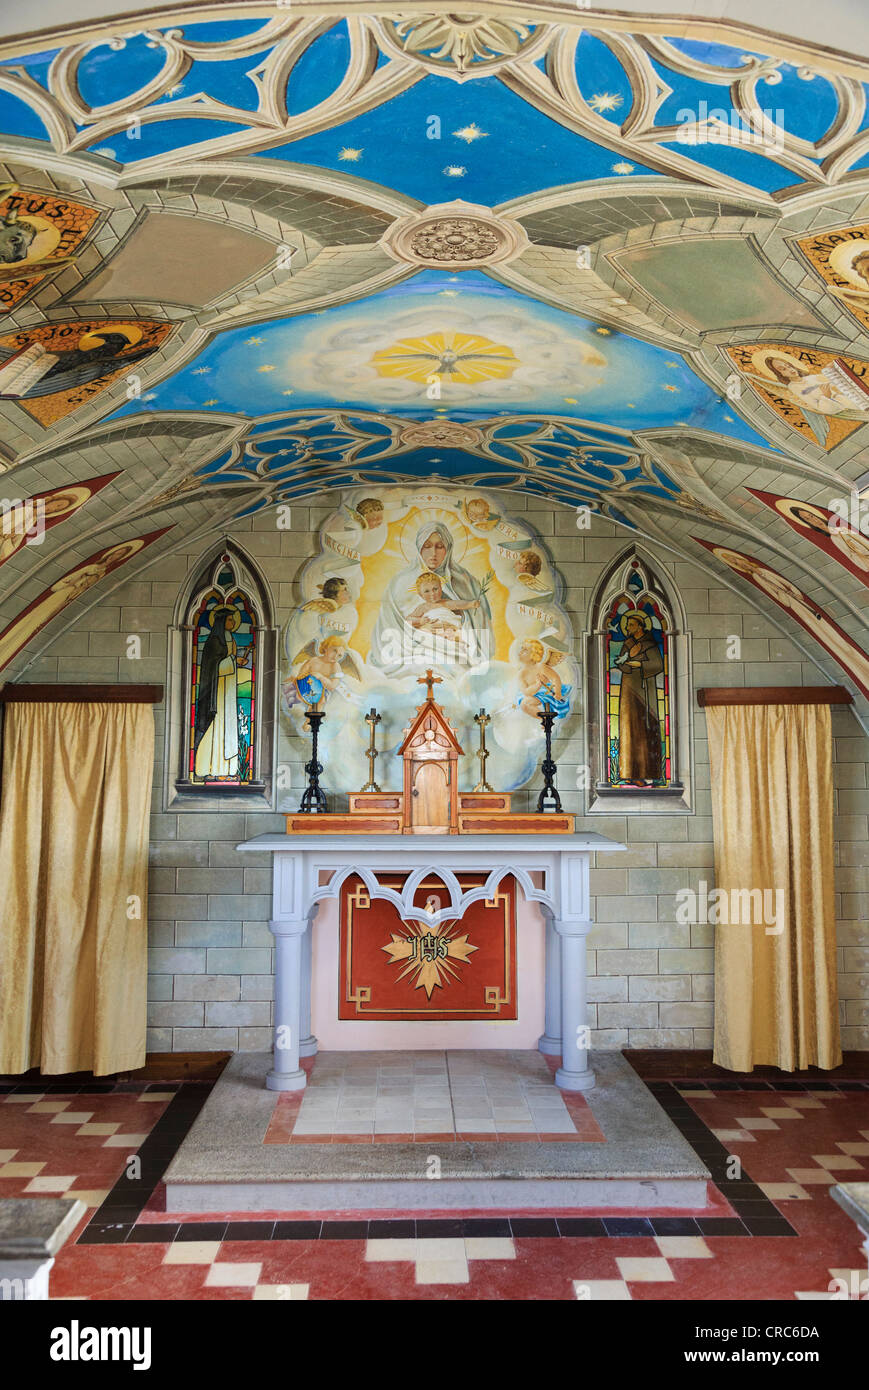 Italian Chapel ornate interior built from 2 Nissen huts by Italian prisoners of world war II on Lamb Holm, Orkney, - Stock Image